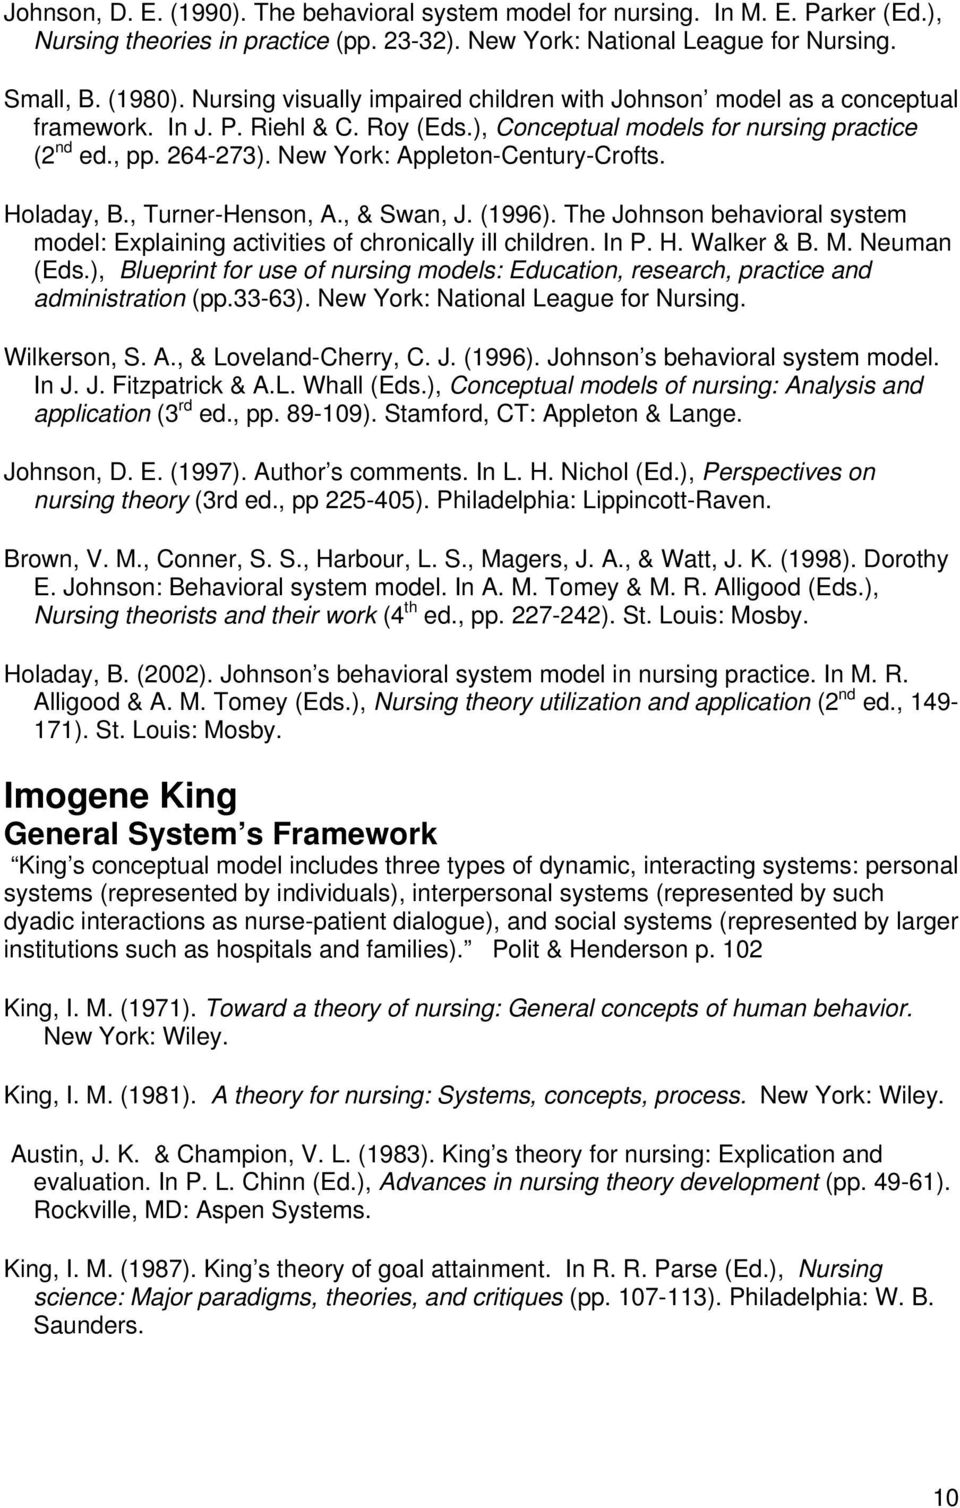 imogene kings interacting systems theory